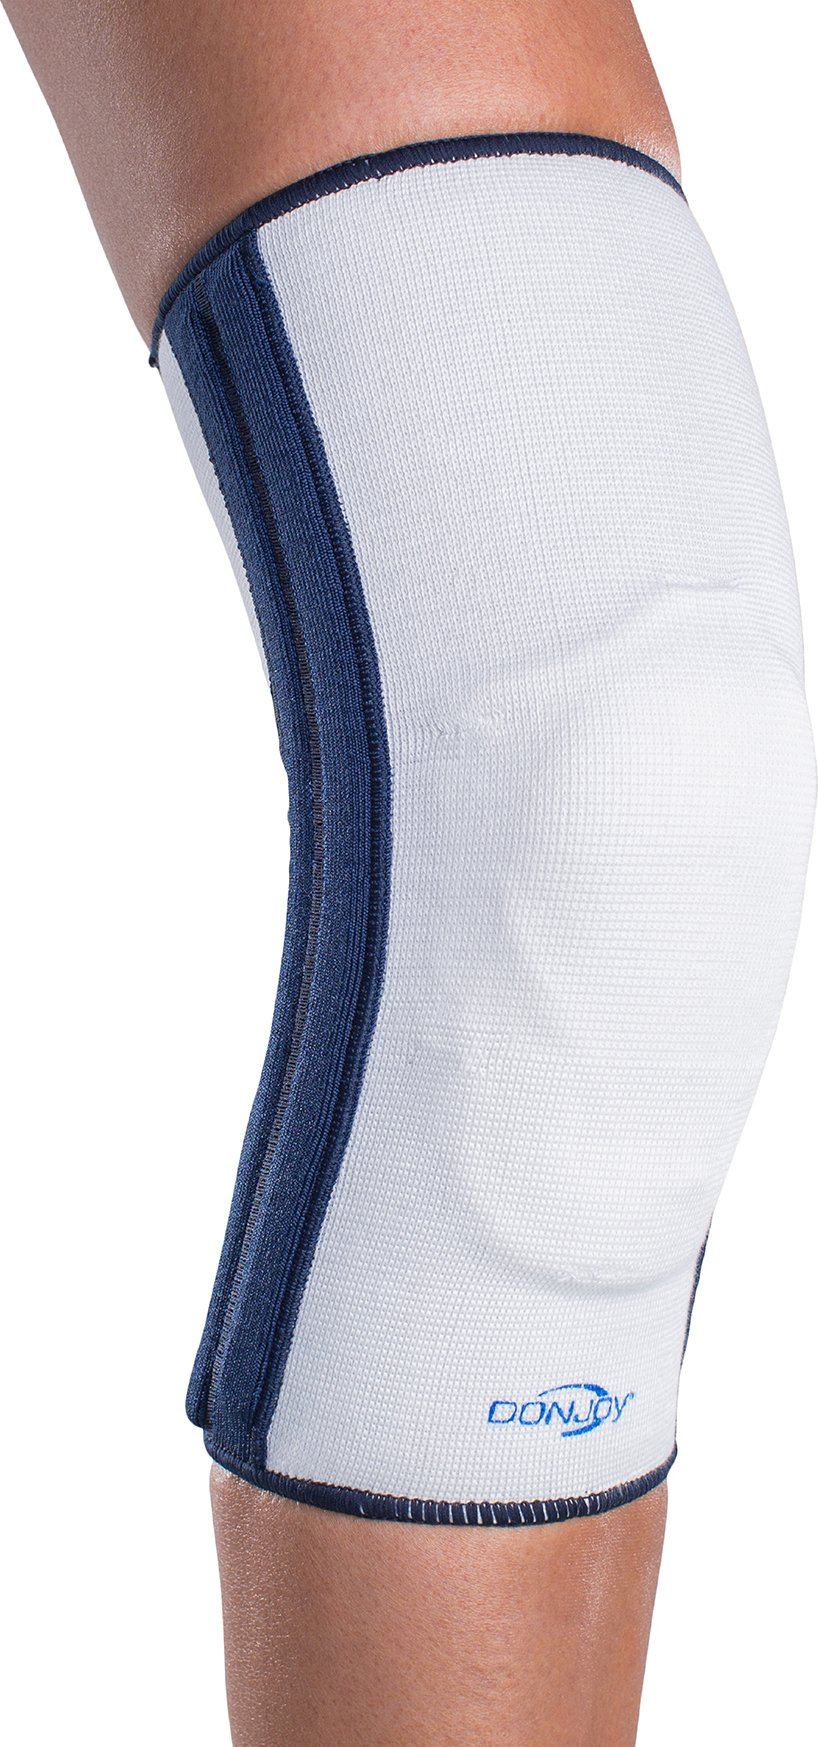 DonJoy Elastic Knee Support / Compression Sleeve, Large by DonJoy